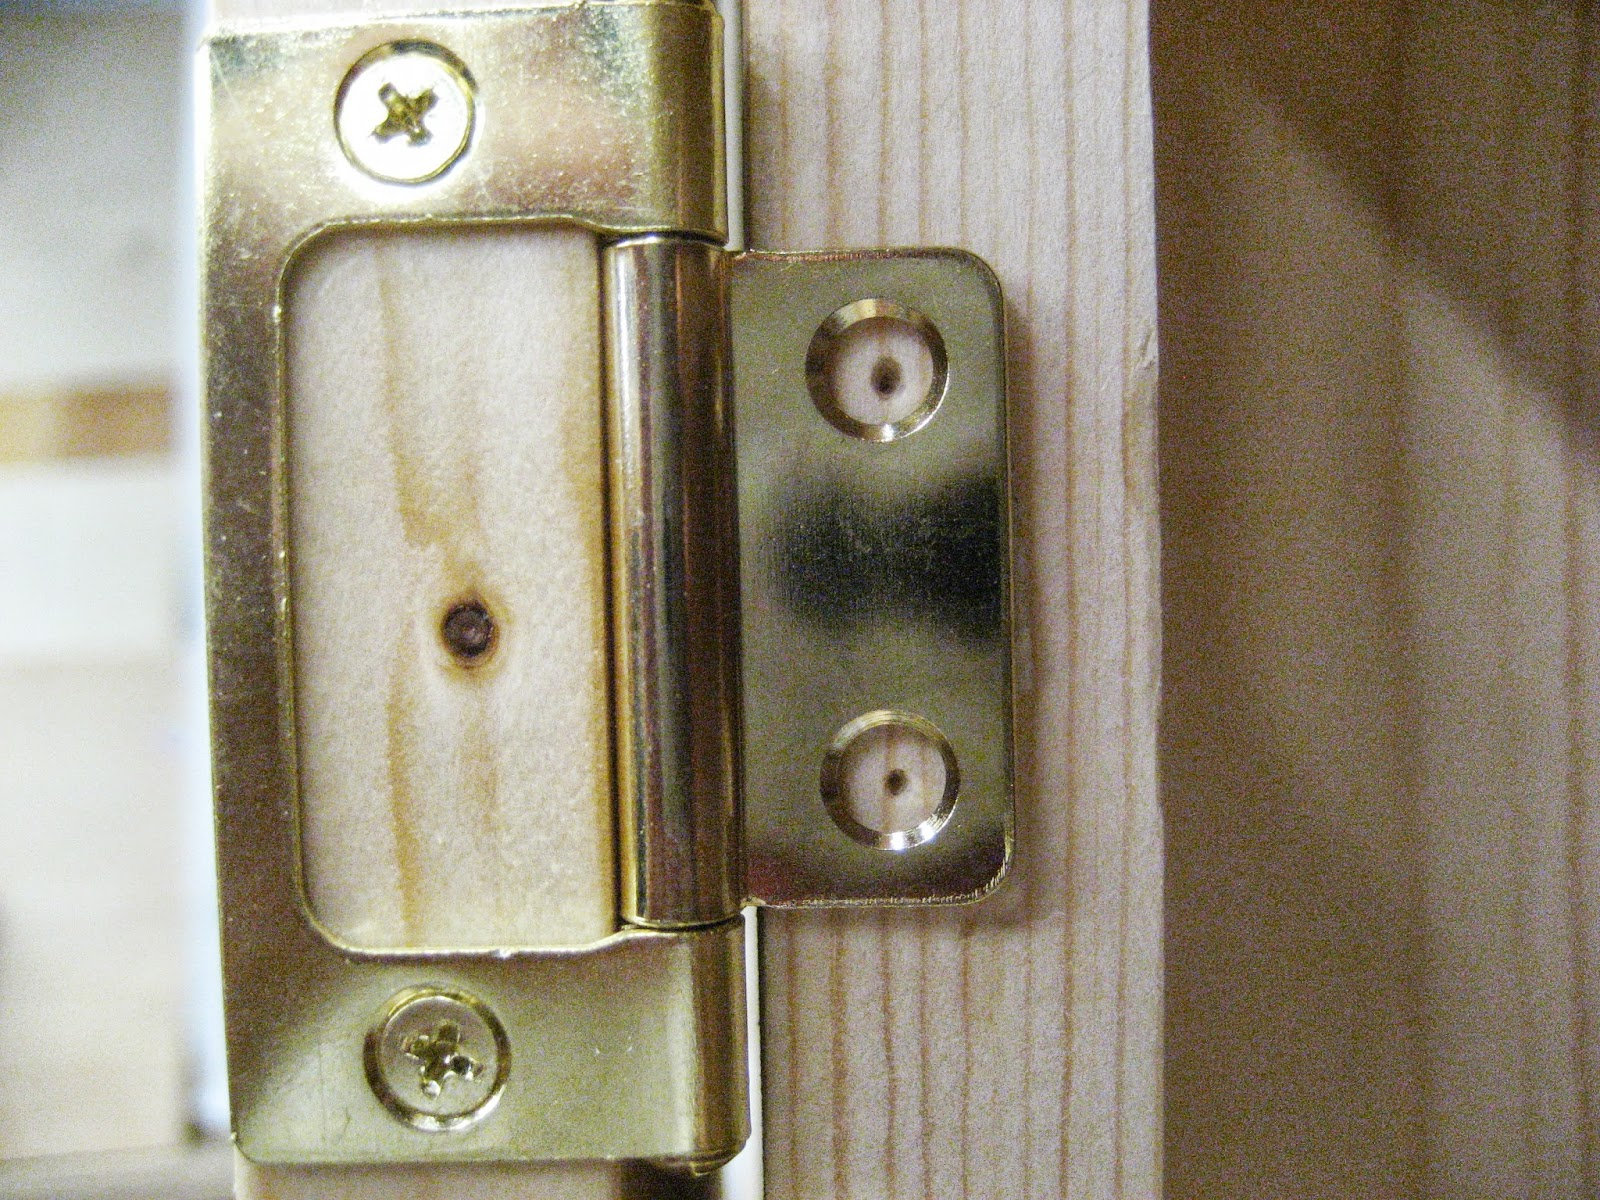 remove tape clamp door to face frame with scrap that is the same thickness as hinge barrel drill pilot holes and secure door